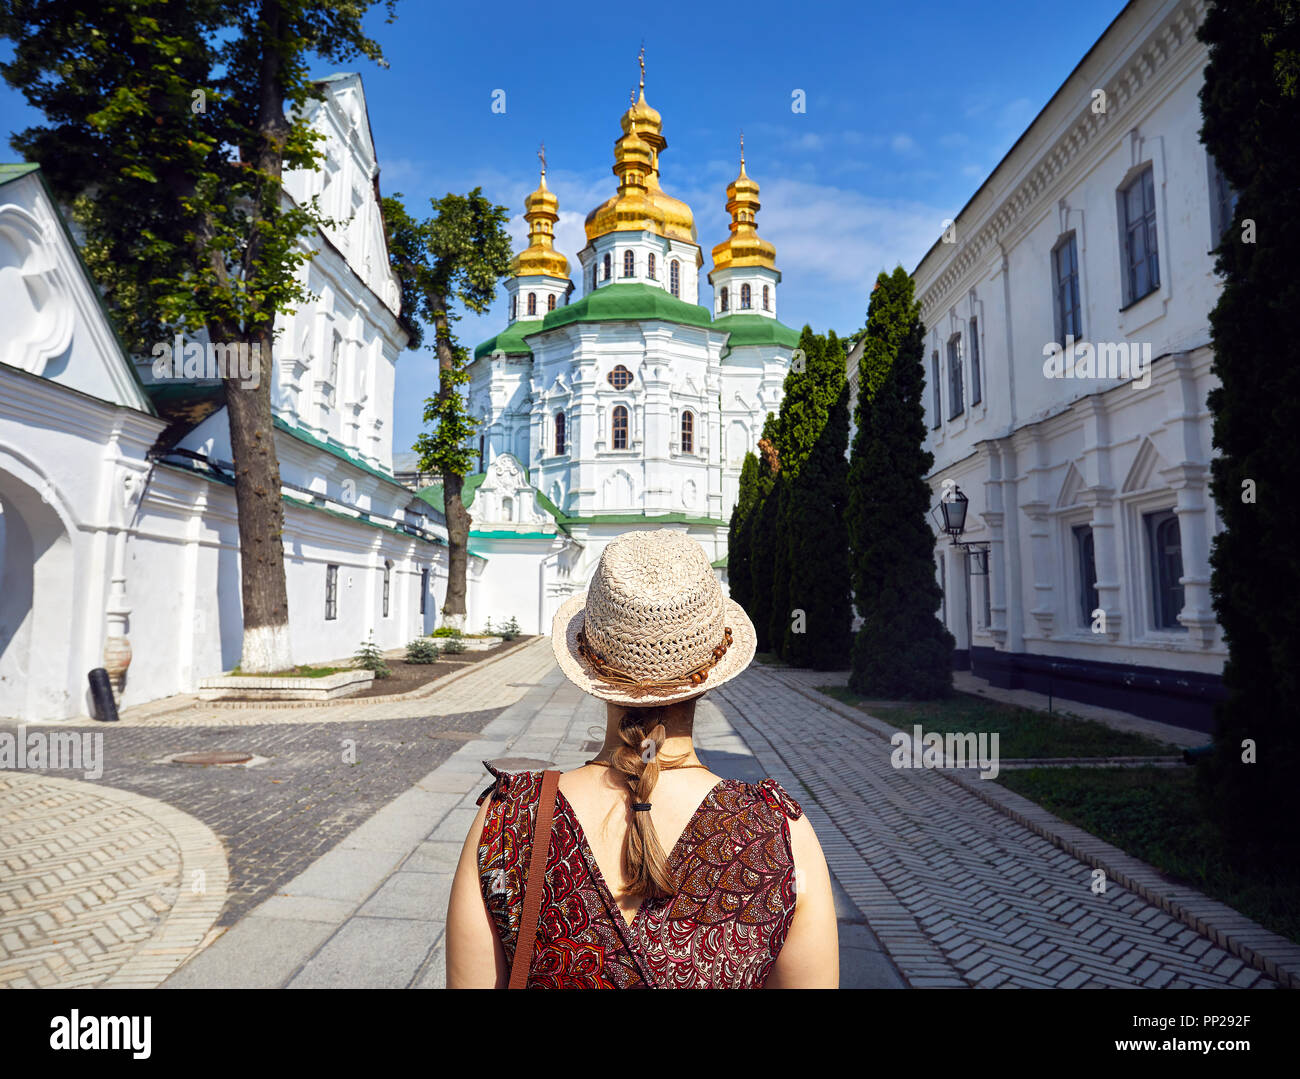 Woman in hat looking at Church with golden domes at Kiev Pechersk Lavra Christian complex. Old historical architecture in Kiev, Ukraine - Stock Image